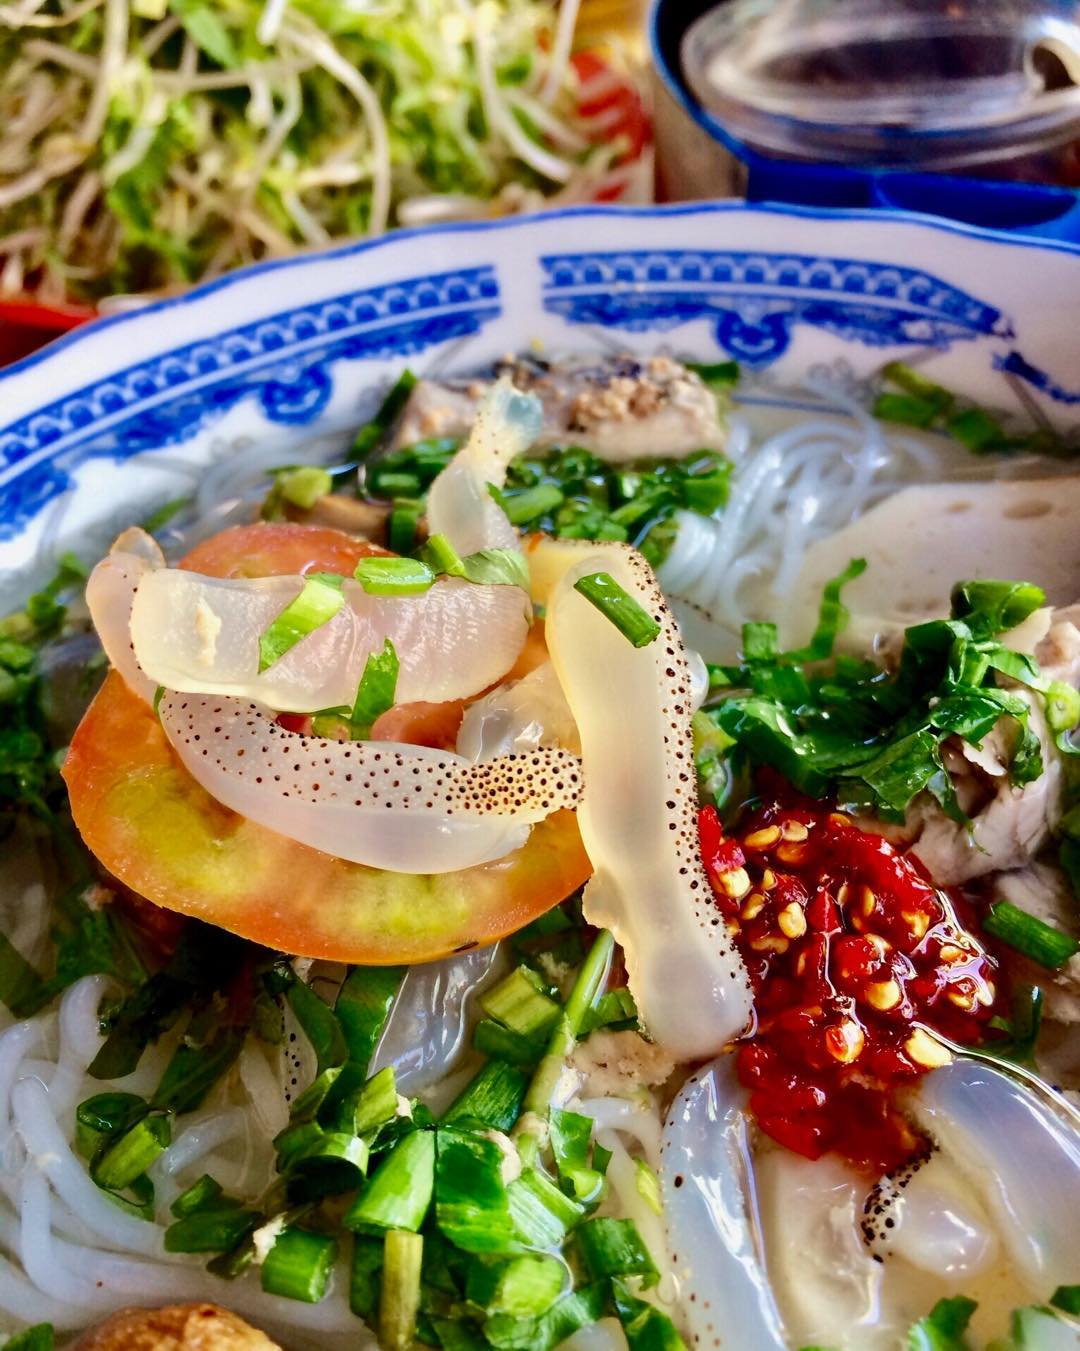 Jellyfish noodles not only earn favour from the locals in Nha Trang but it also gains the heart of many visitors